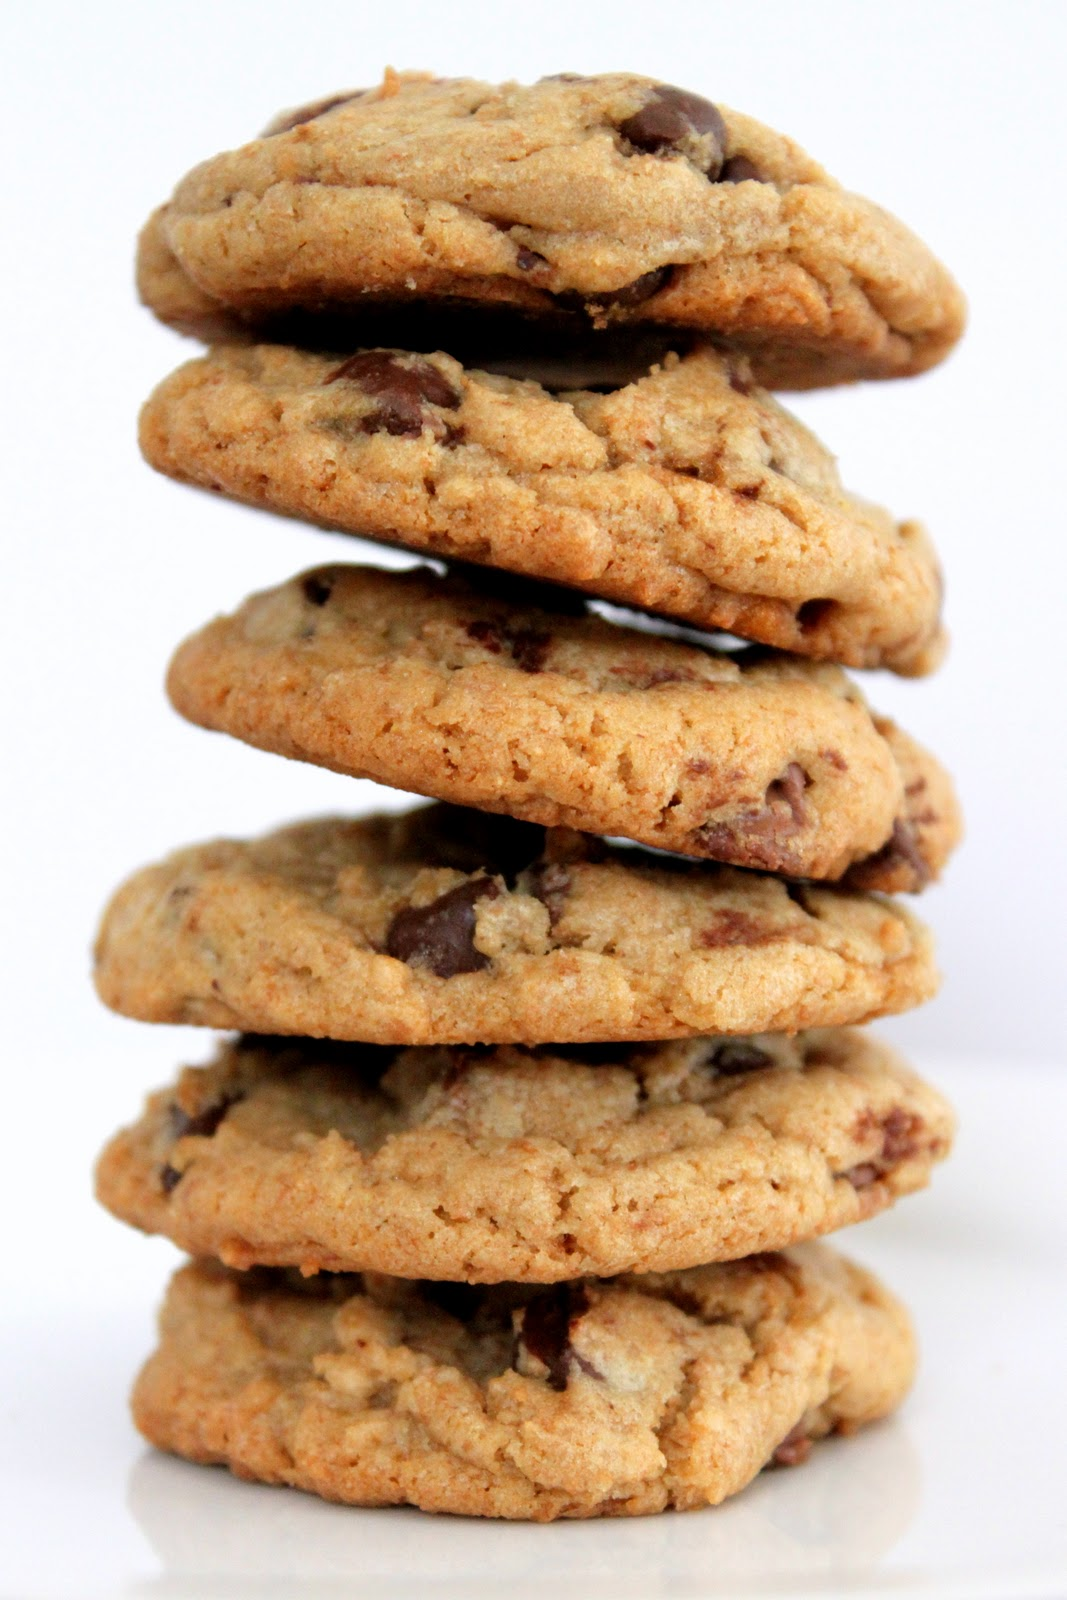 chocolate chip cookie wallpaper - photo #27